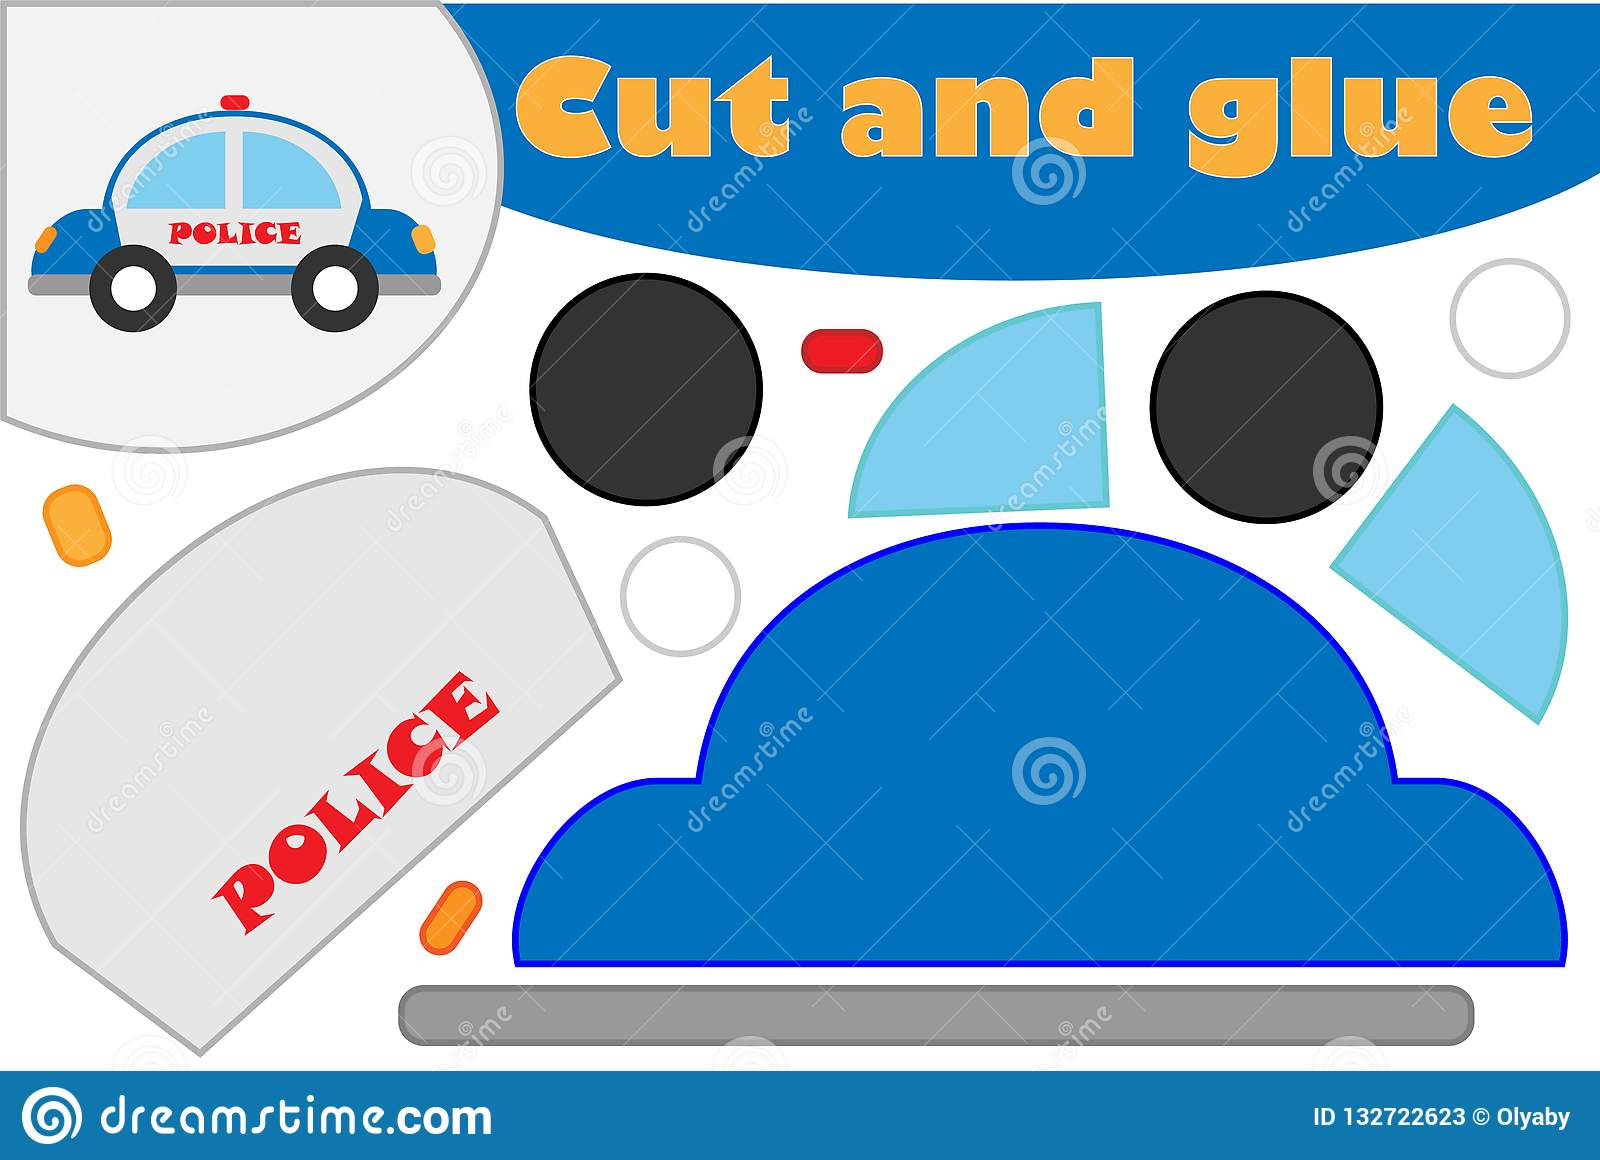 Police Car In Cartoon Style Education Game For The